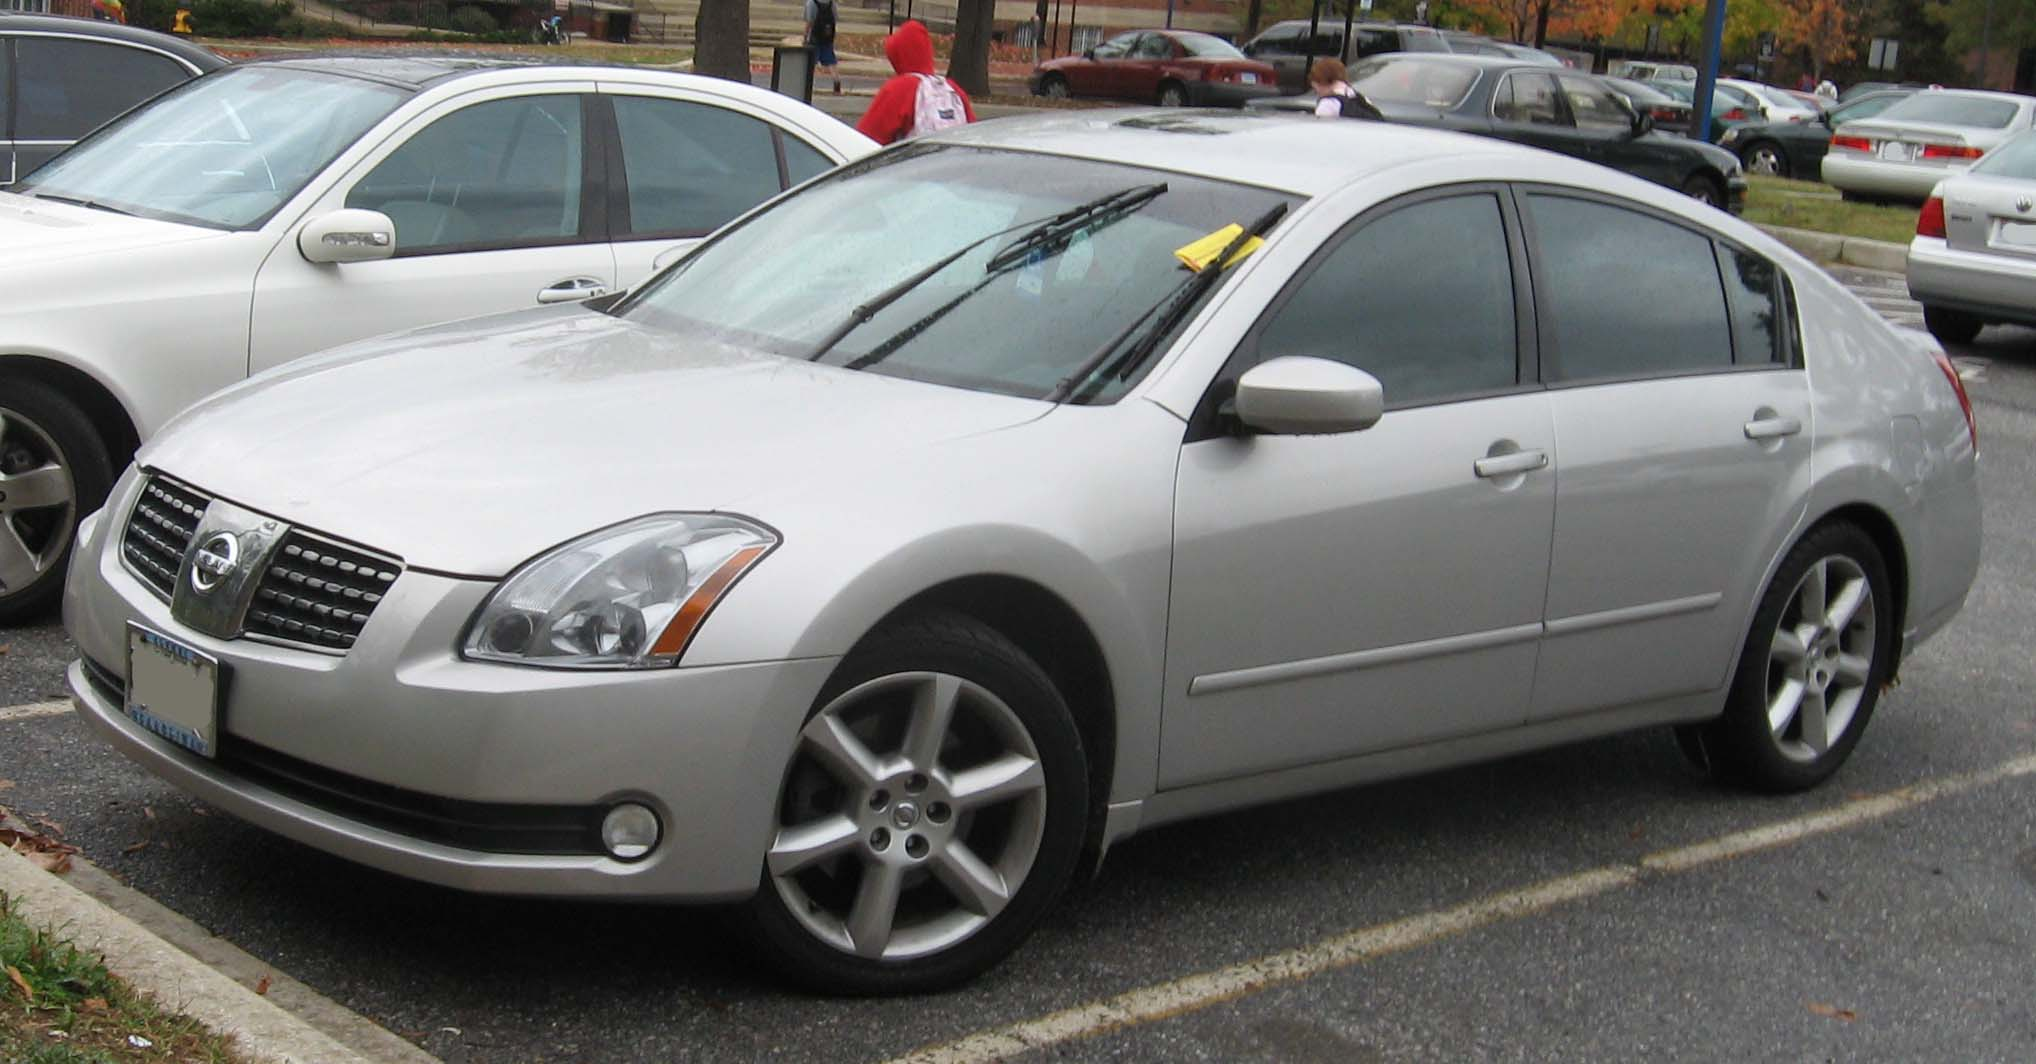 2004 nissan maxima a34 pictures information and specs. Black Bedroom Furniture Sets. Home Design Ideas